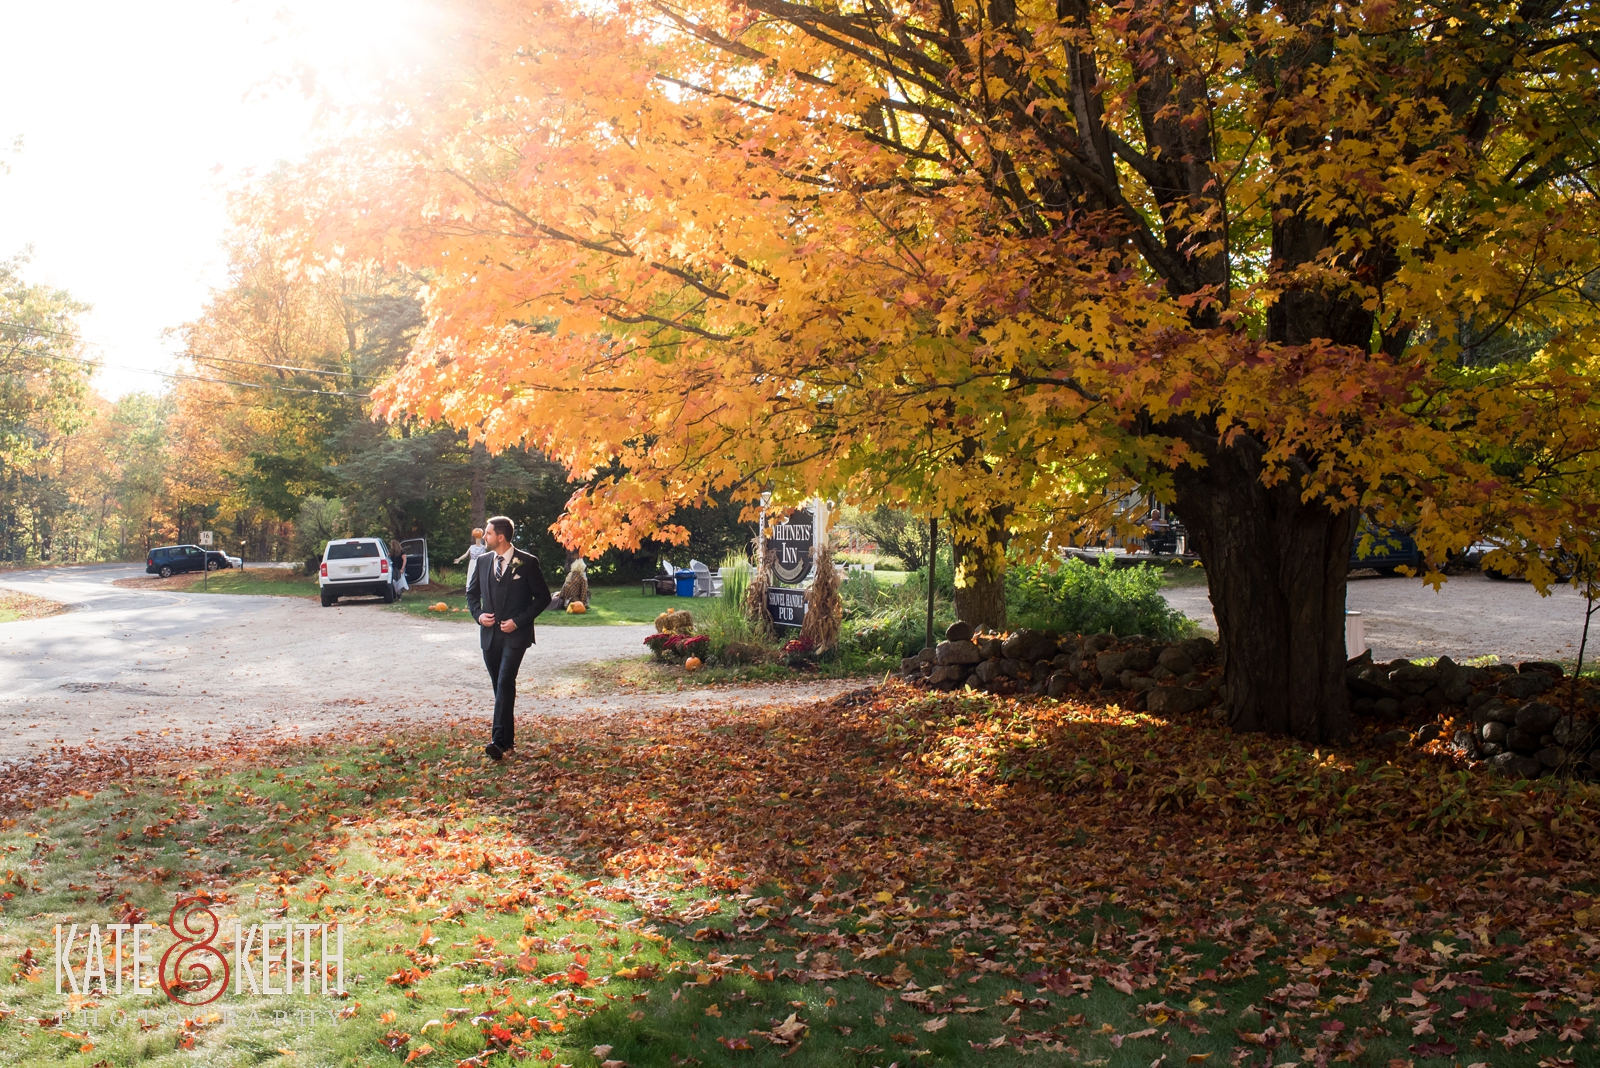 wedding weekend, Jackson, New Hampshire, Whitney's Inn, wedding ceremony, wedding photographers, outdoor wedding ceremony, weekend events, outdoor wedding,  autumn wedding, fall wedding, mountain wedding, weekend wedding, first look, New England, natural wedding photos